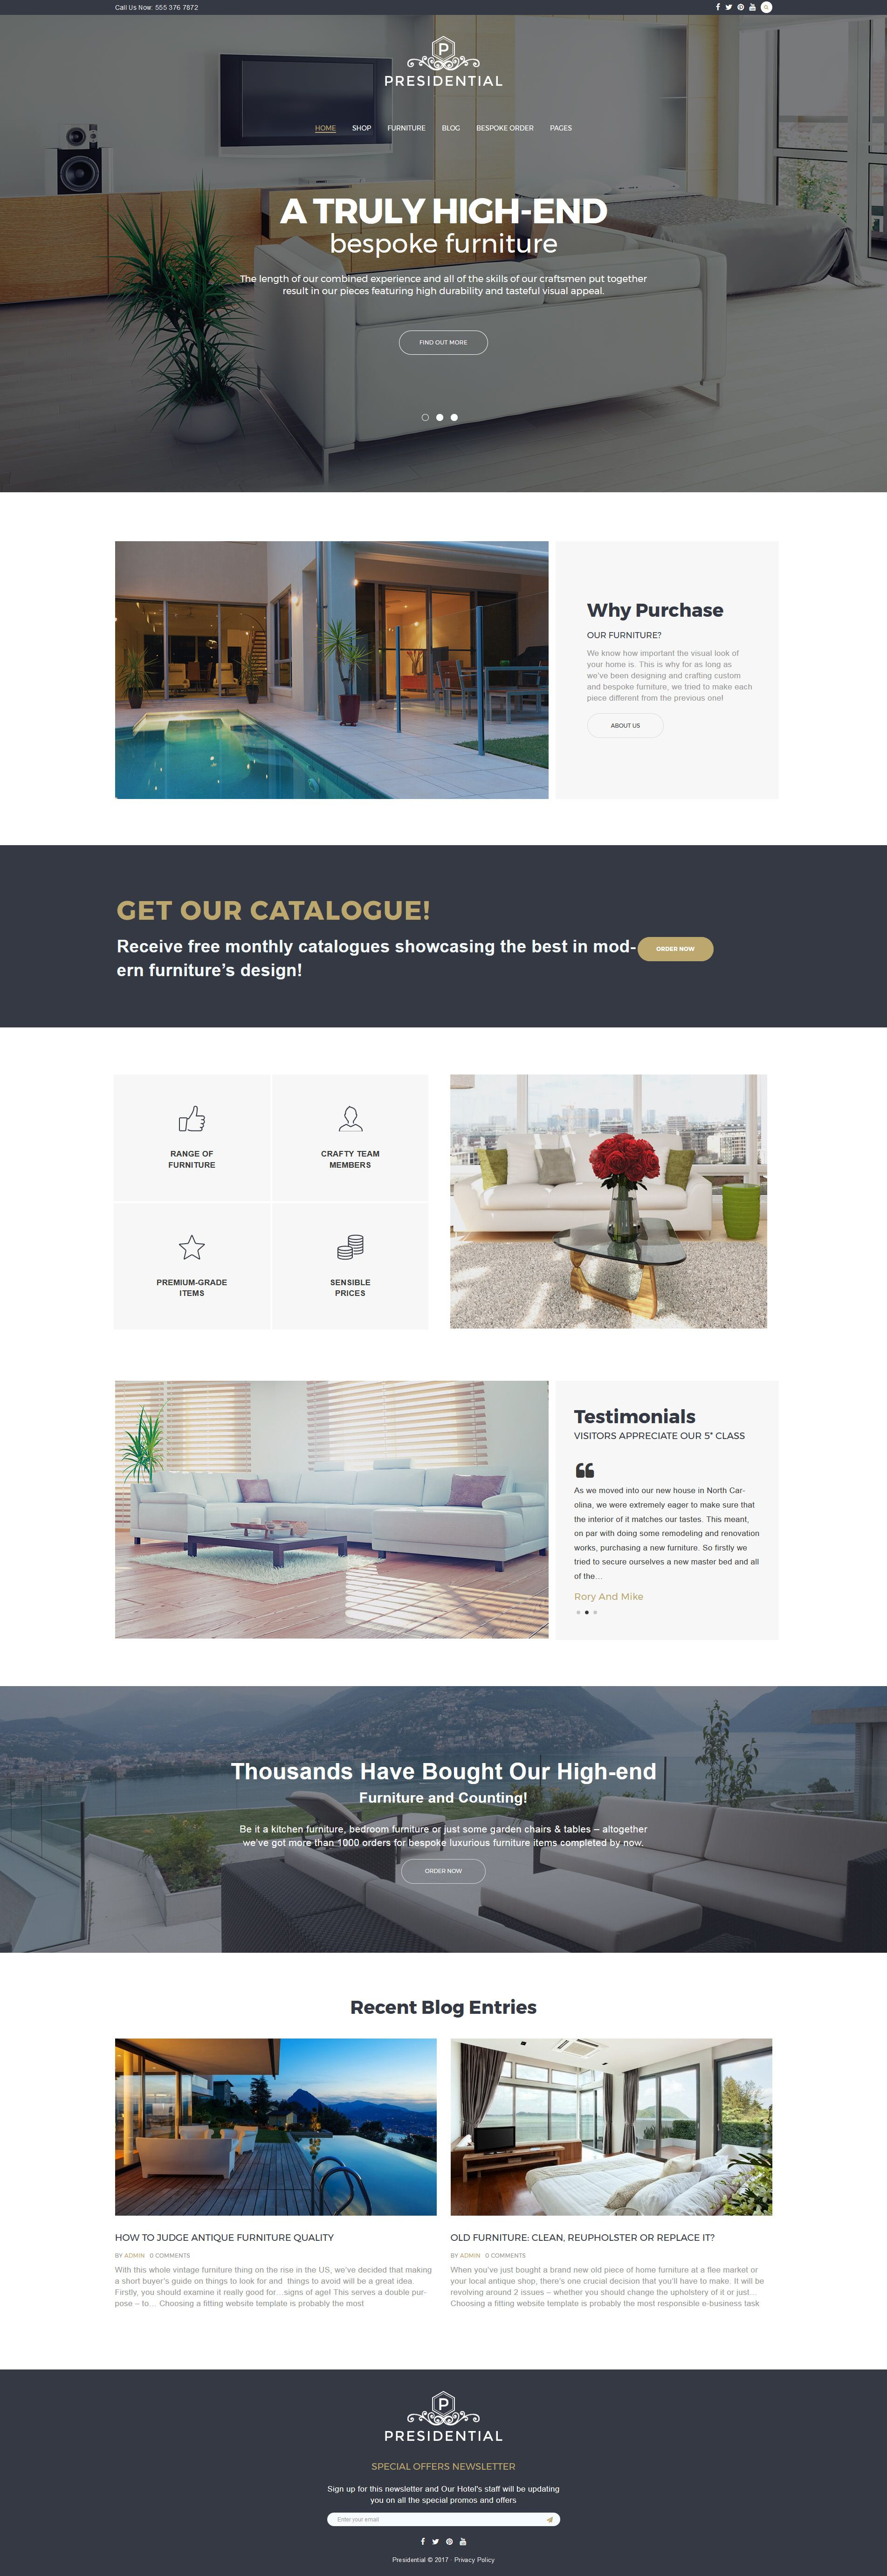 Outstanding Home Improvement Website Templates Frieze Resume Ideas - Home remodeling website templates